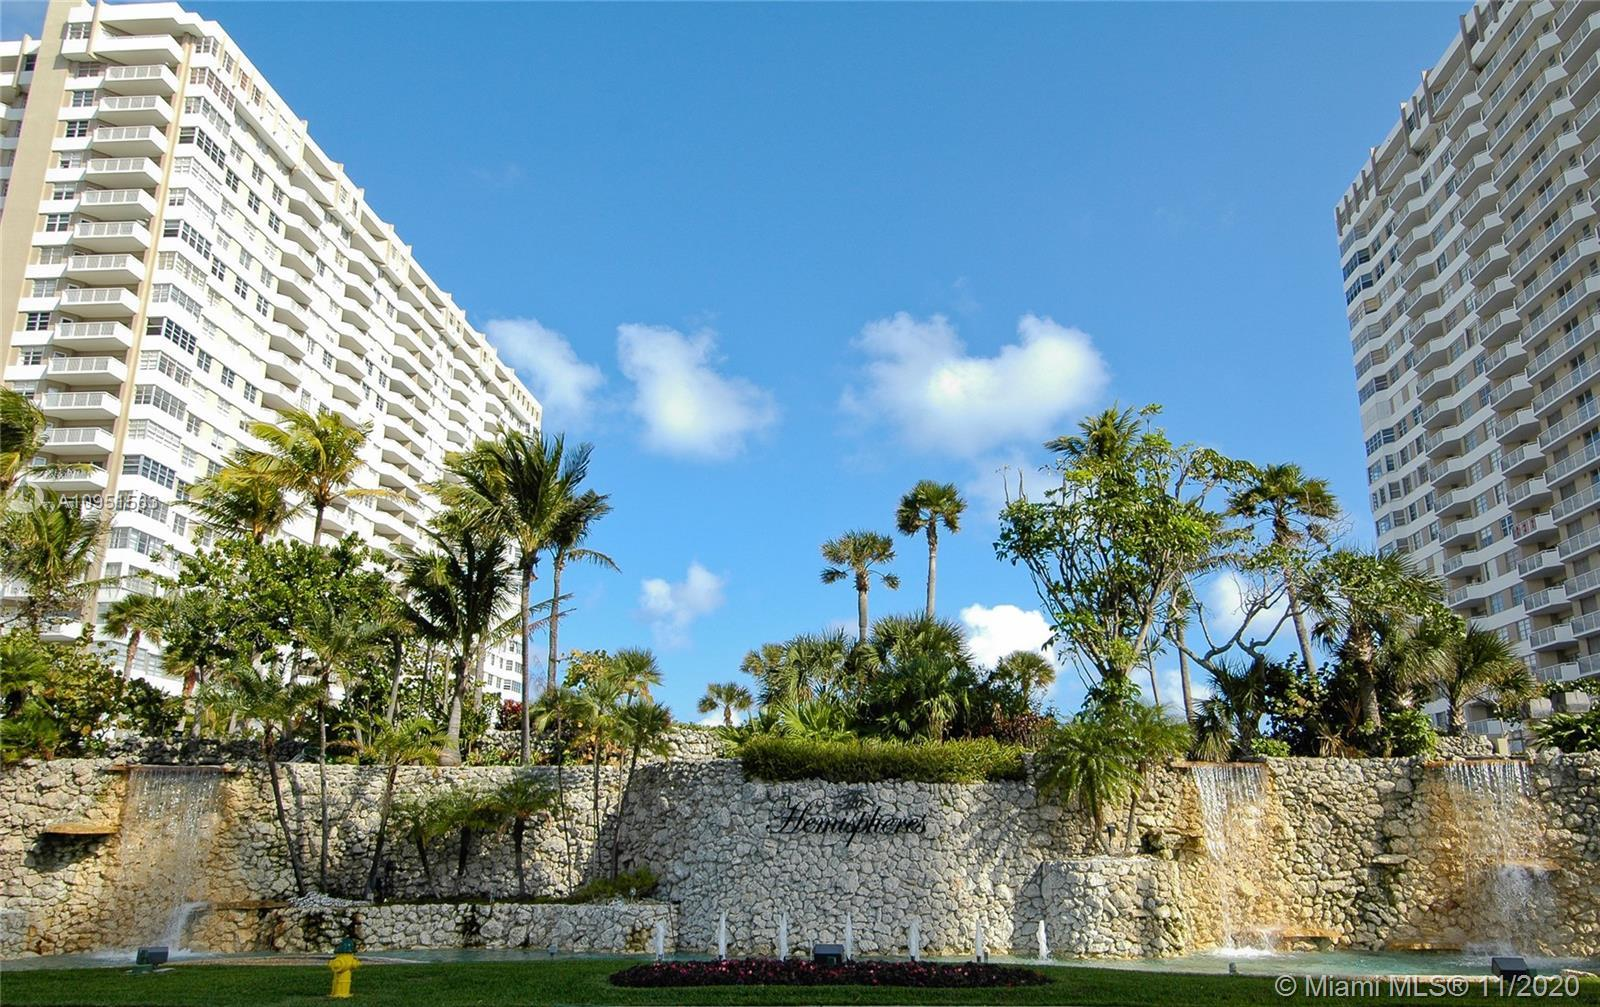 BEAUTIFUL 2/2 APARTMENT AT THE HEMISPHERES OCEAN SOUTH BUILDING WITH DIRECT OCEAN FRONT VIEWS. REMOD